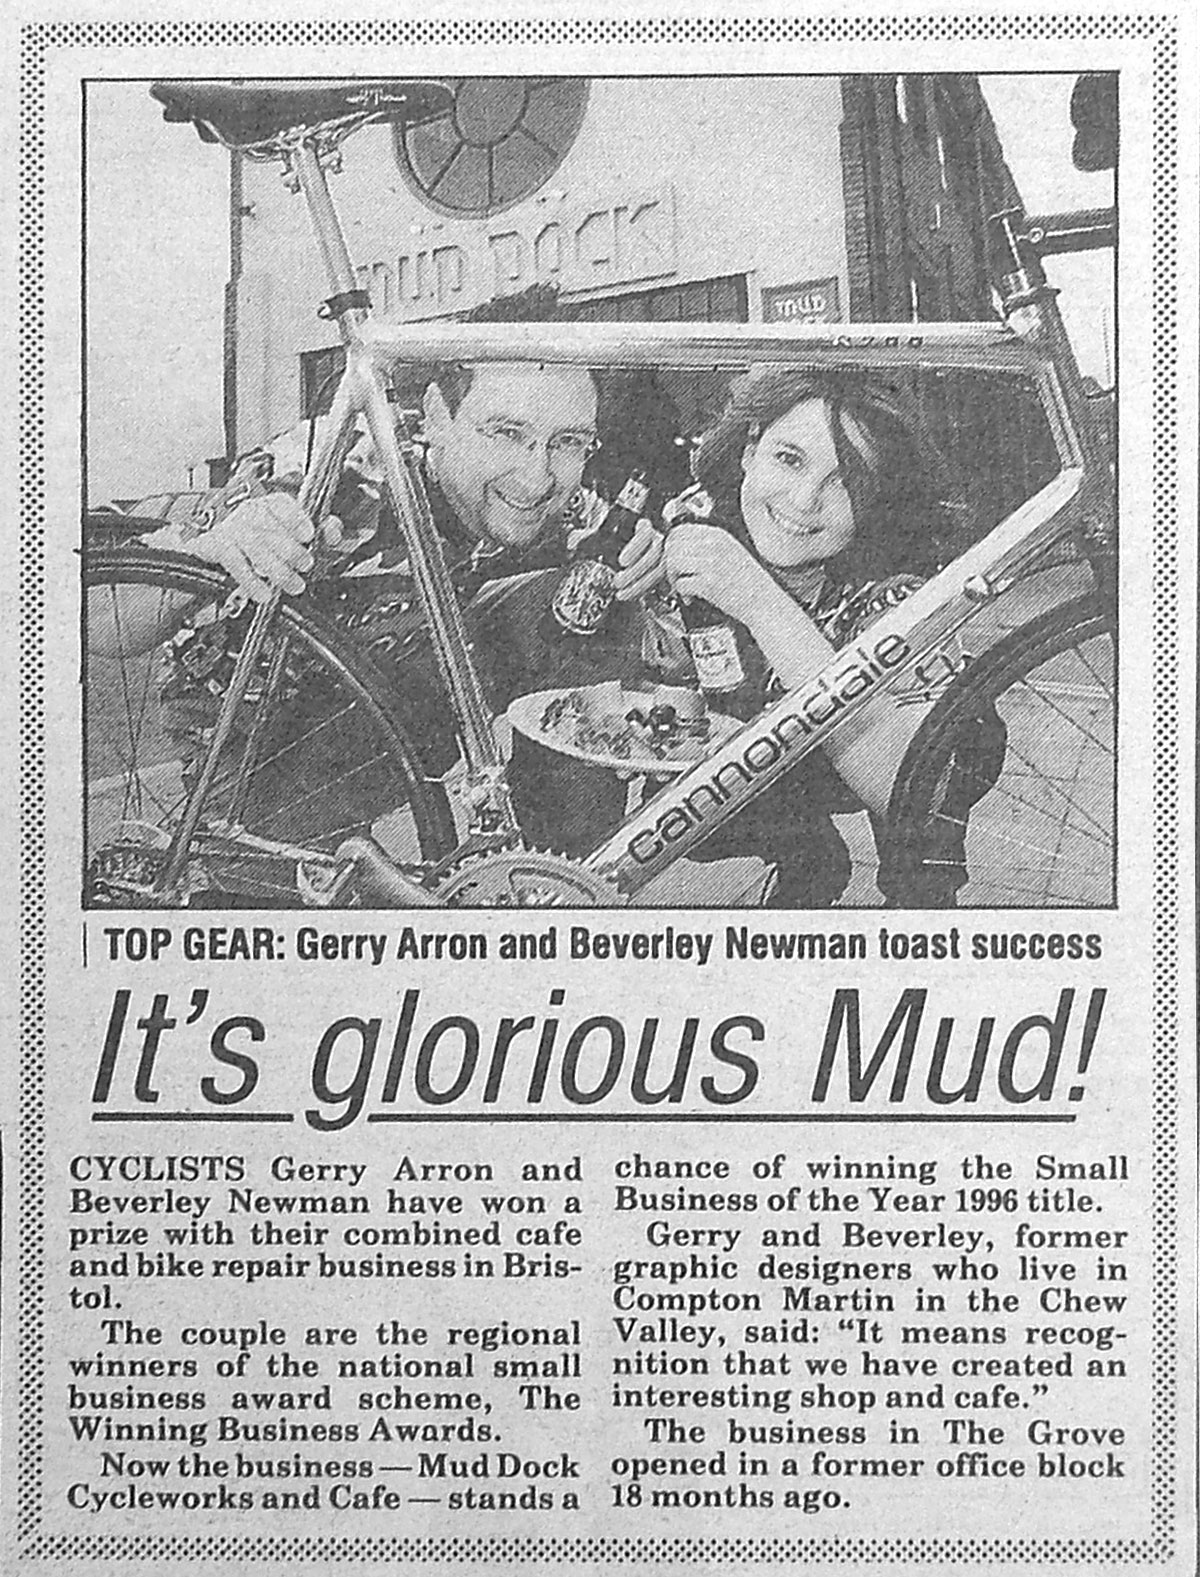 Glorious Mud article, 1995